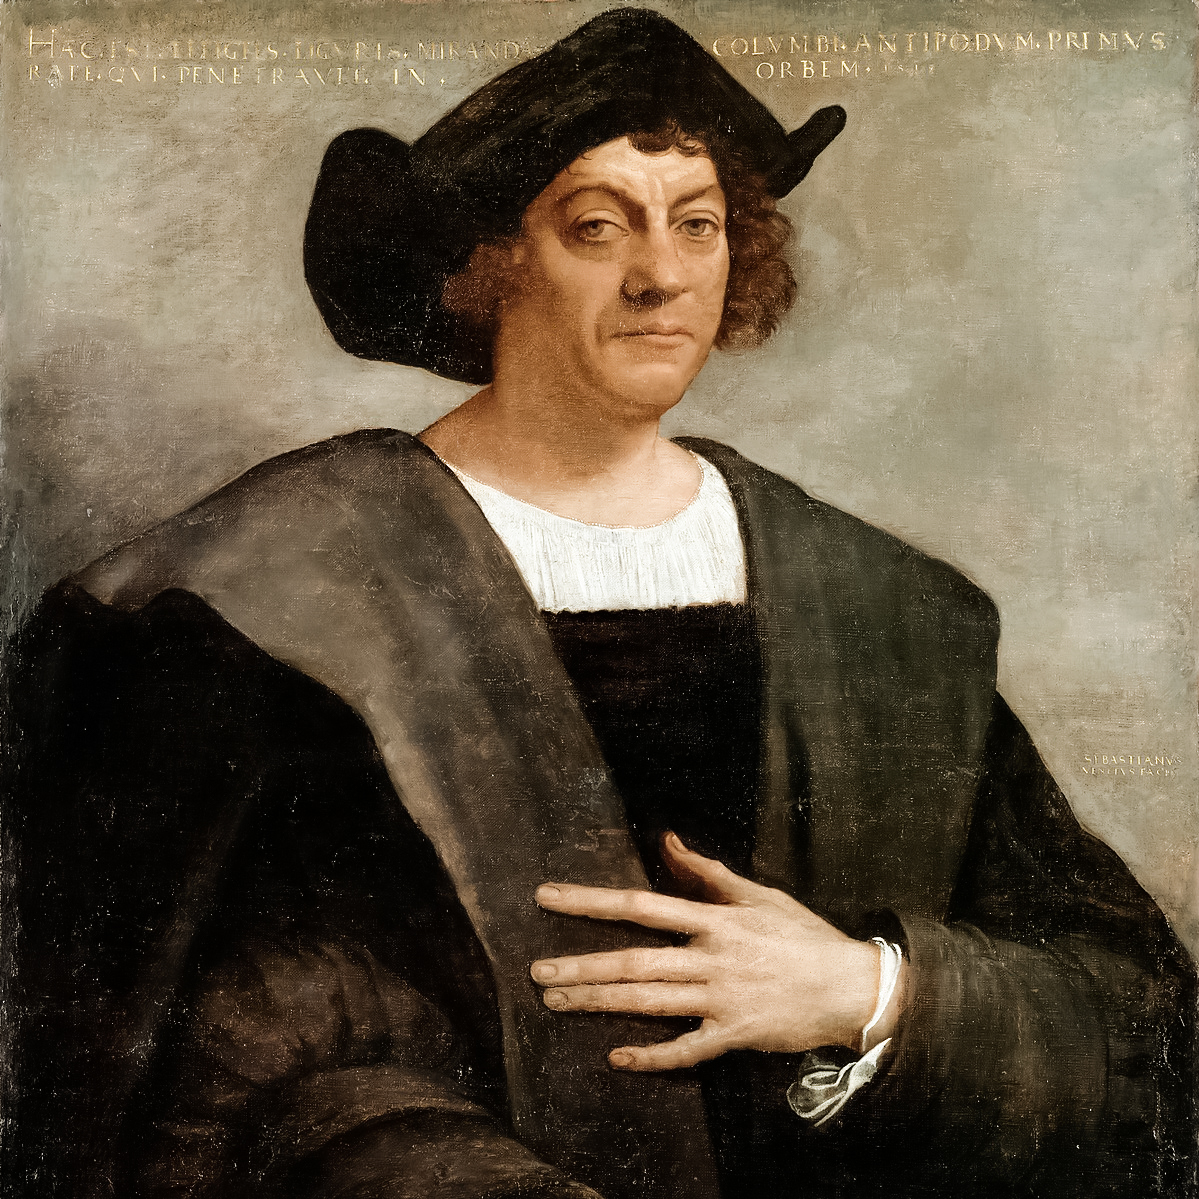 Christopher Columbus | nothingnewpress.com